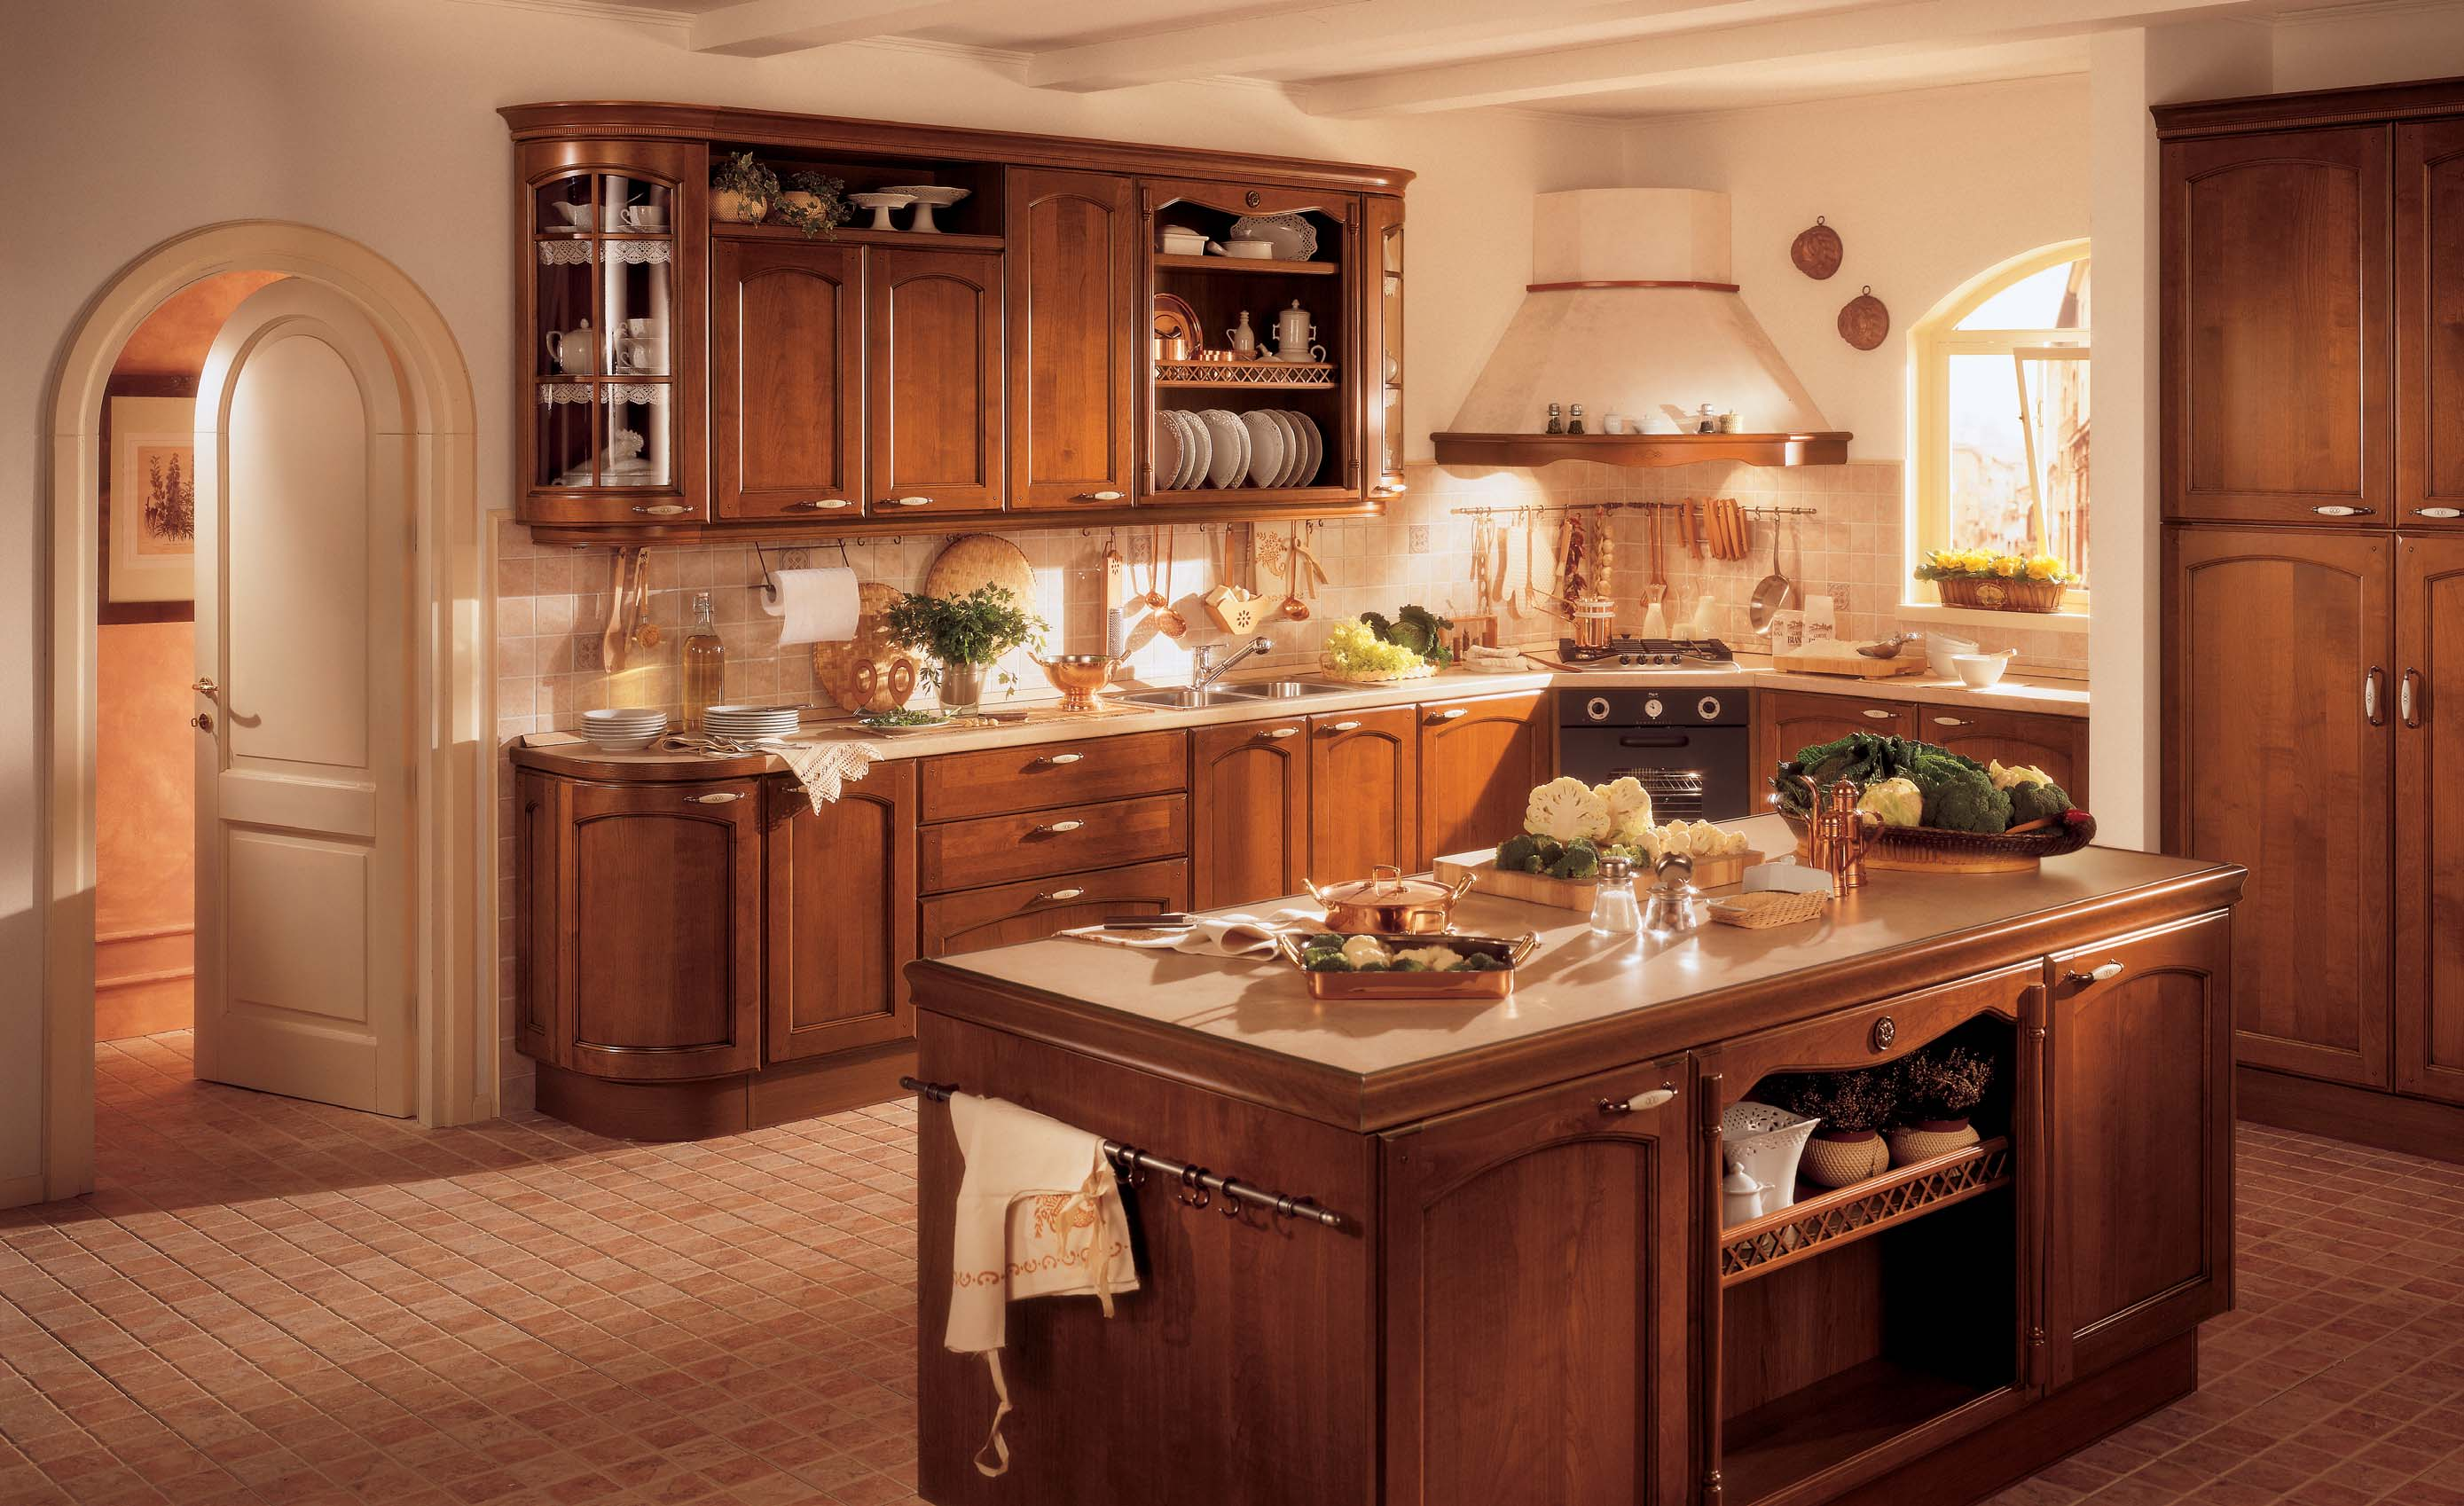 Epoca classic kitchen interior design for Classic style kitchen ideas